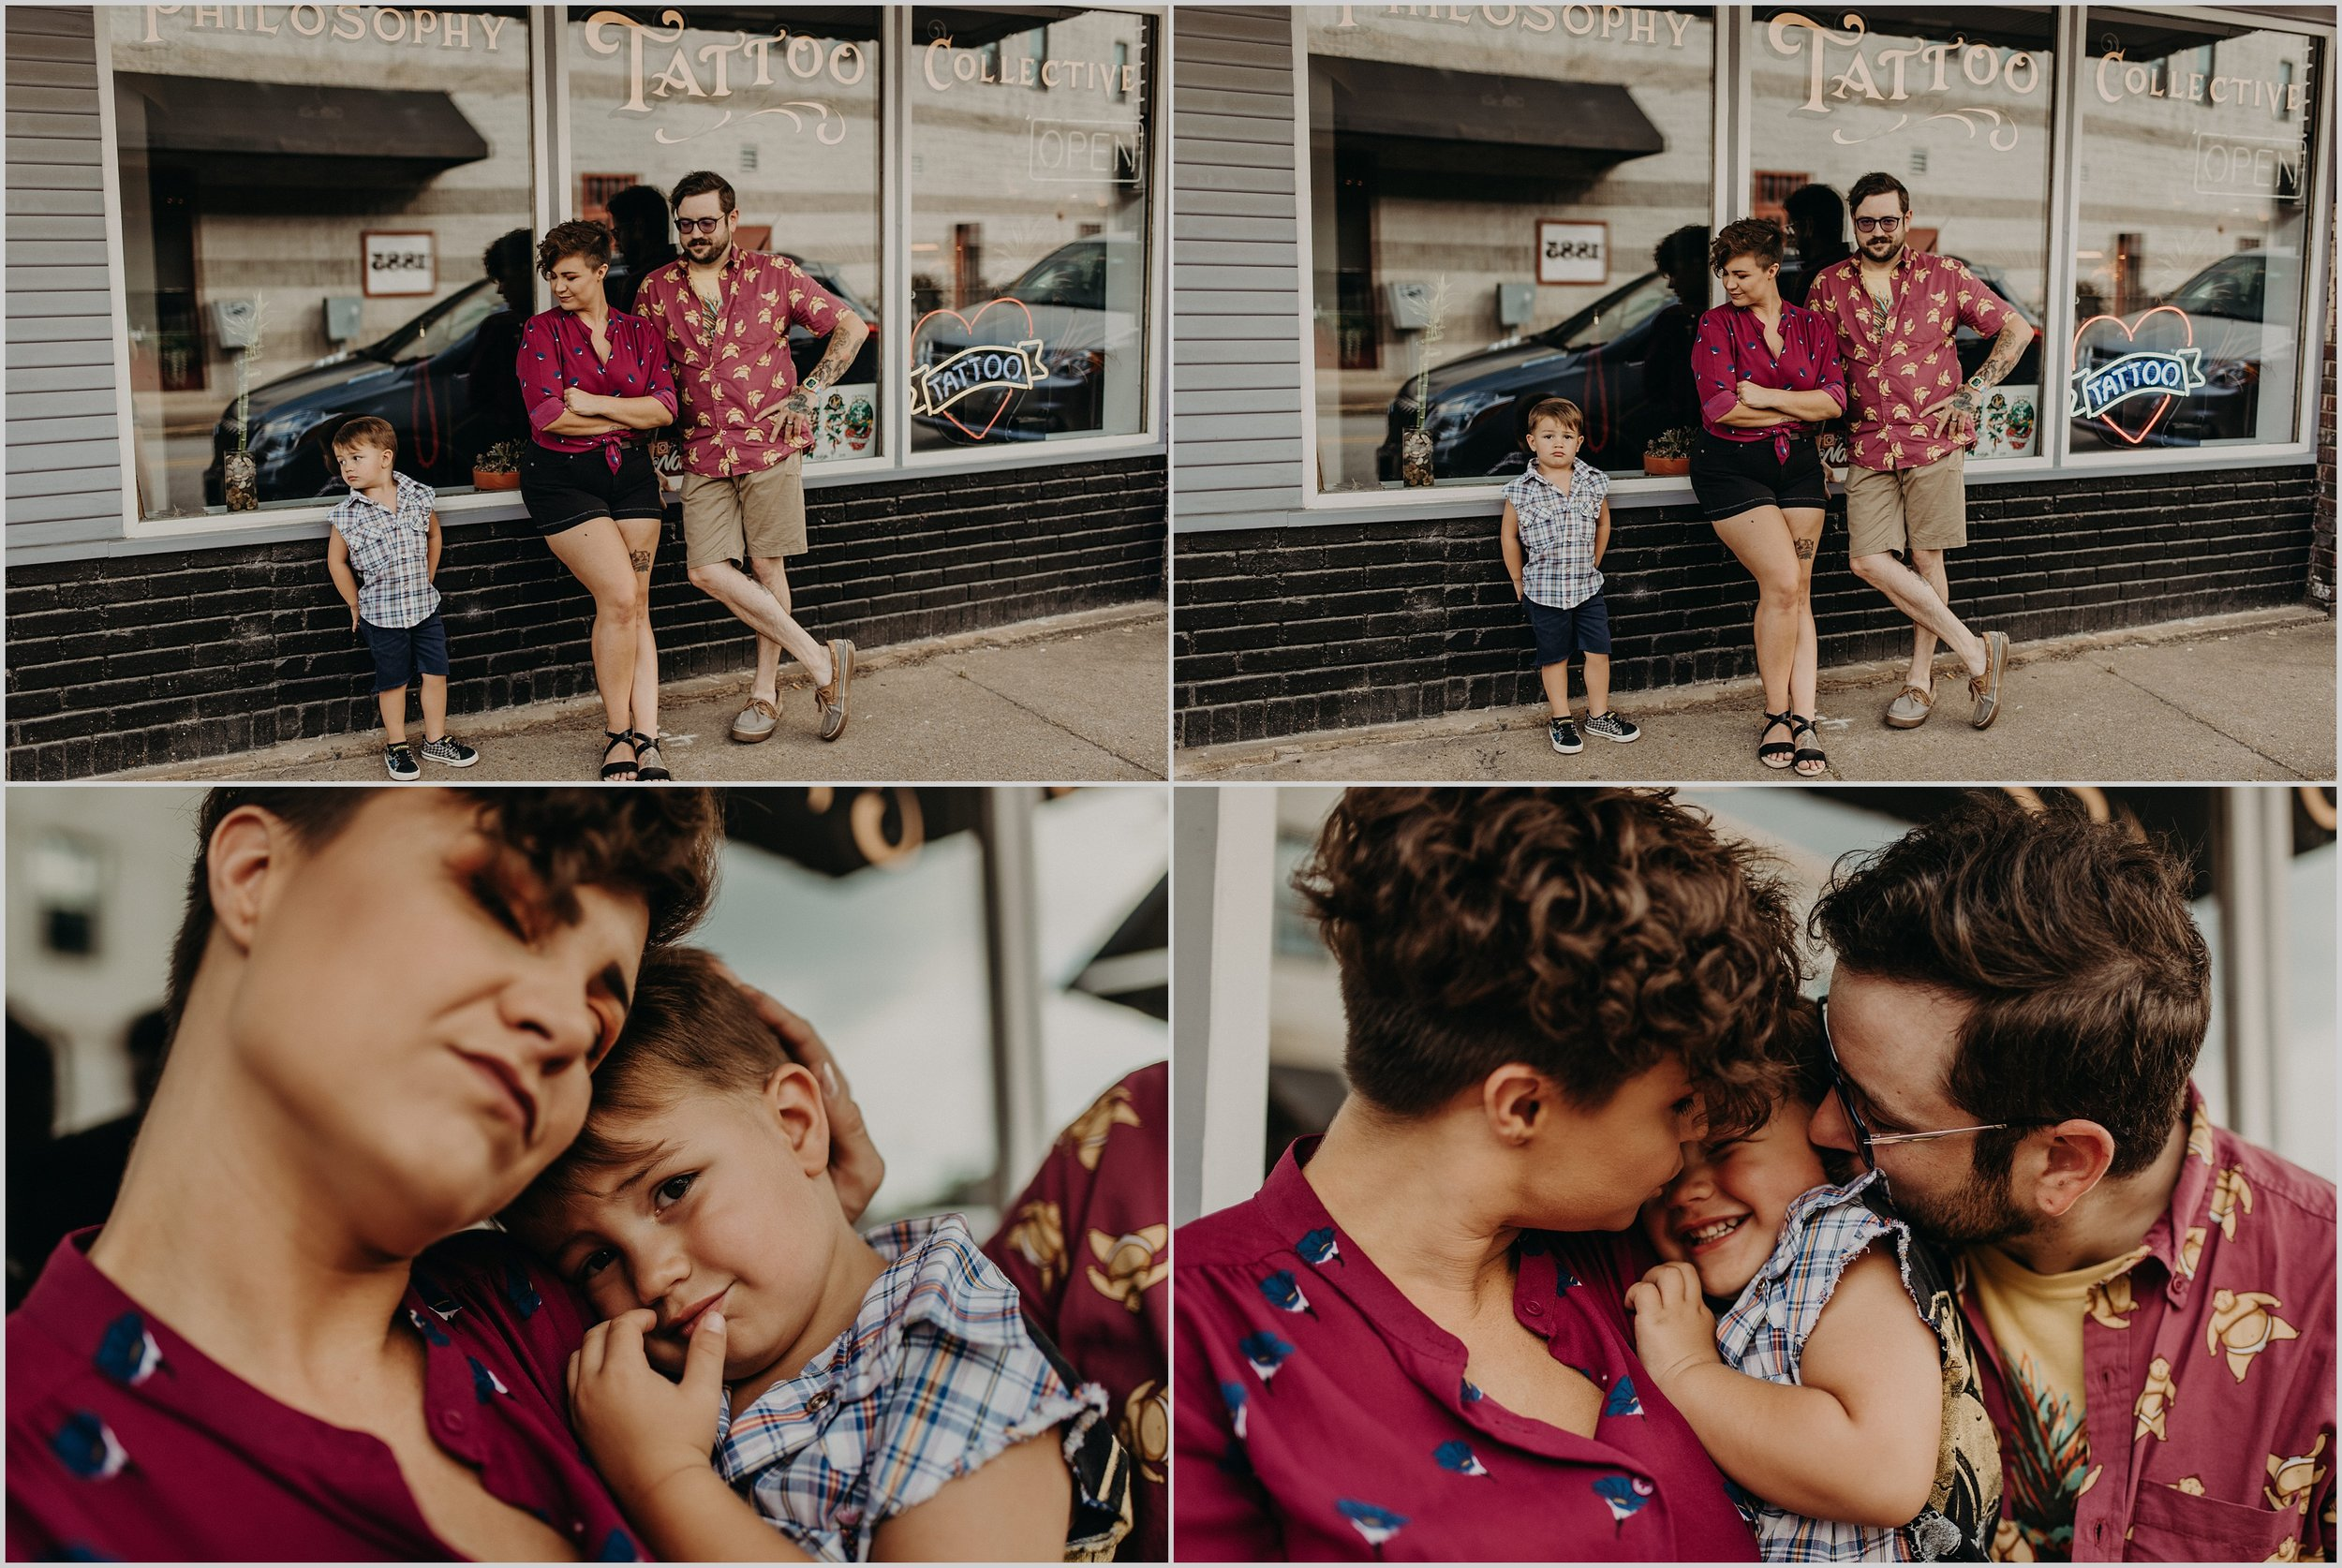 Alternative urban family photo session in front of a tattoo parlor